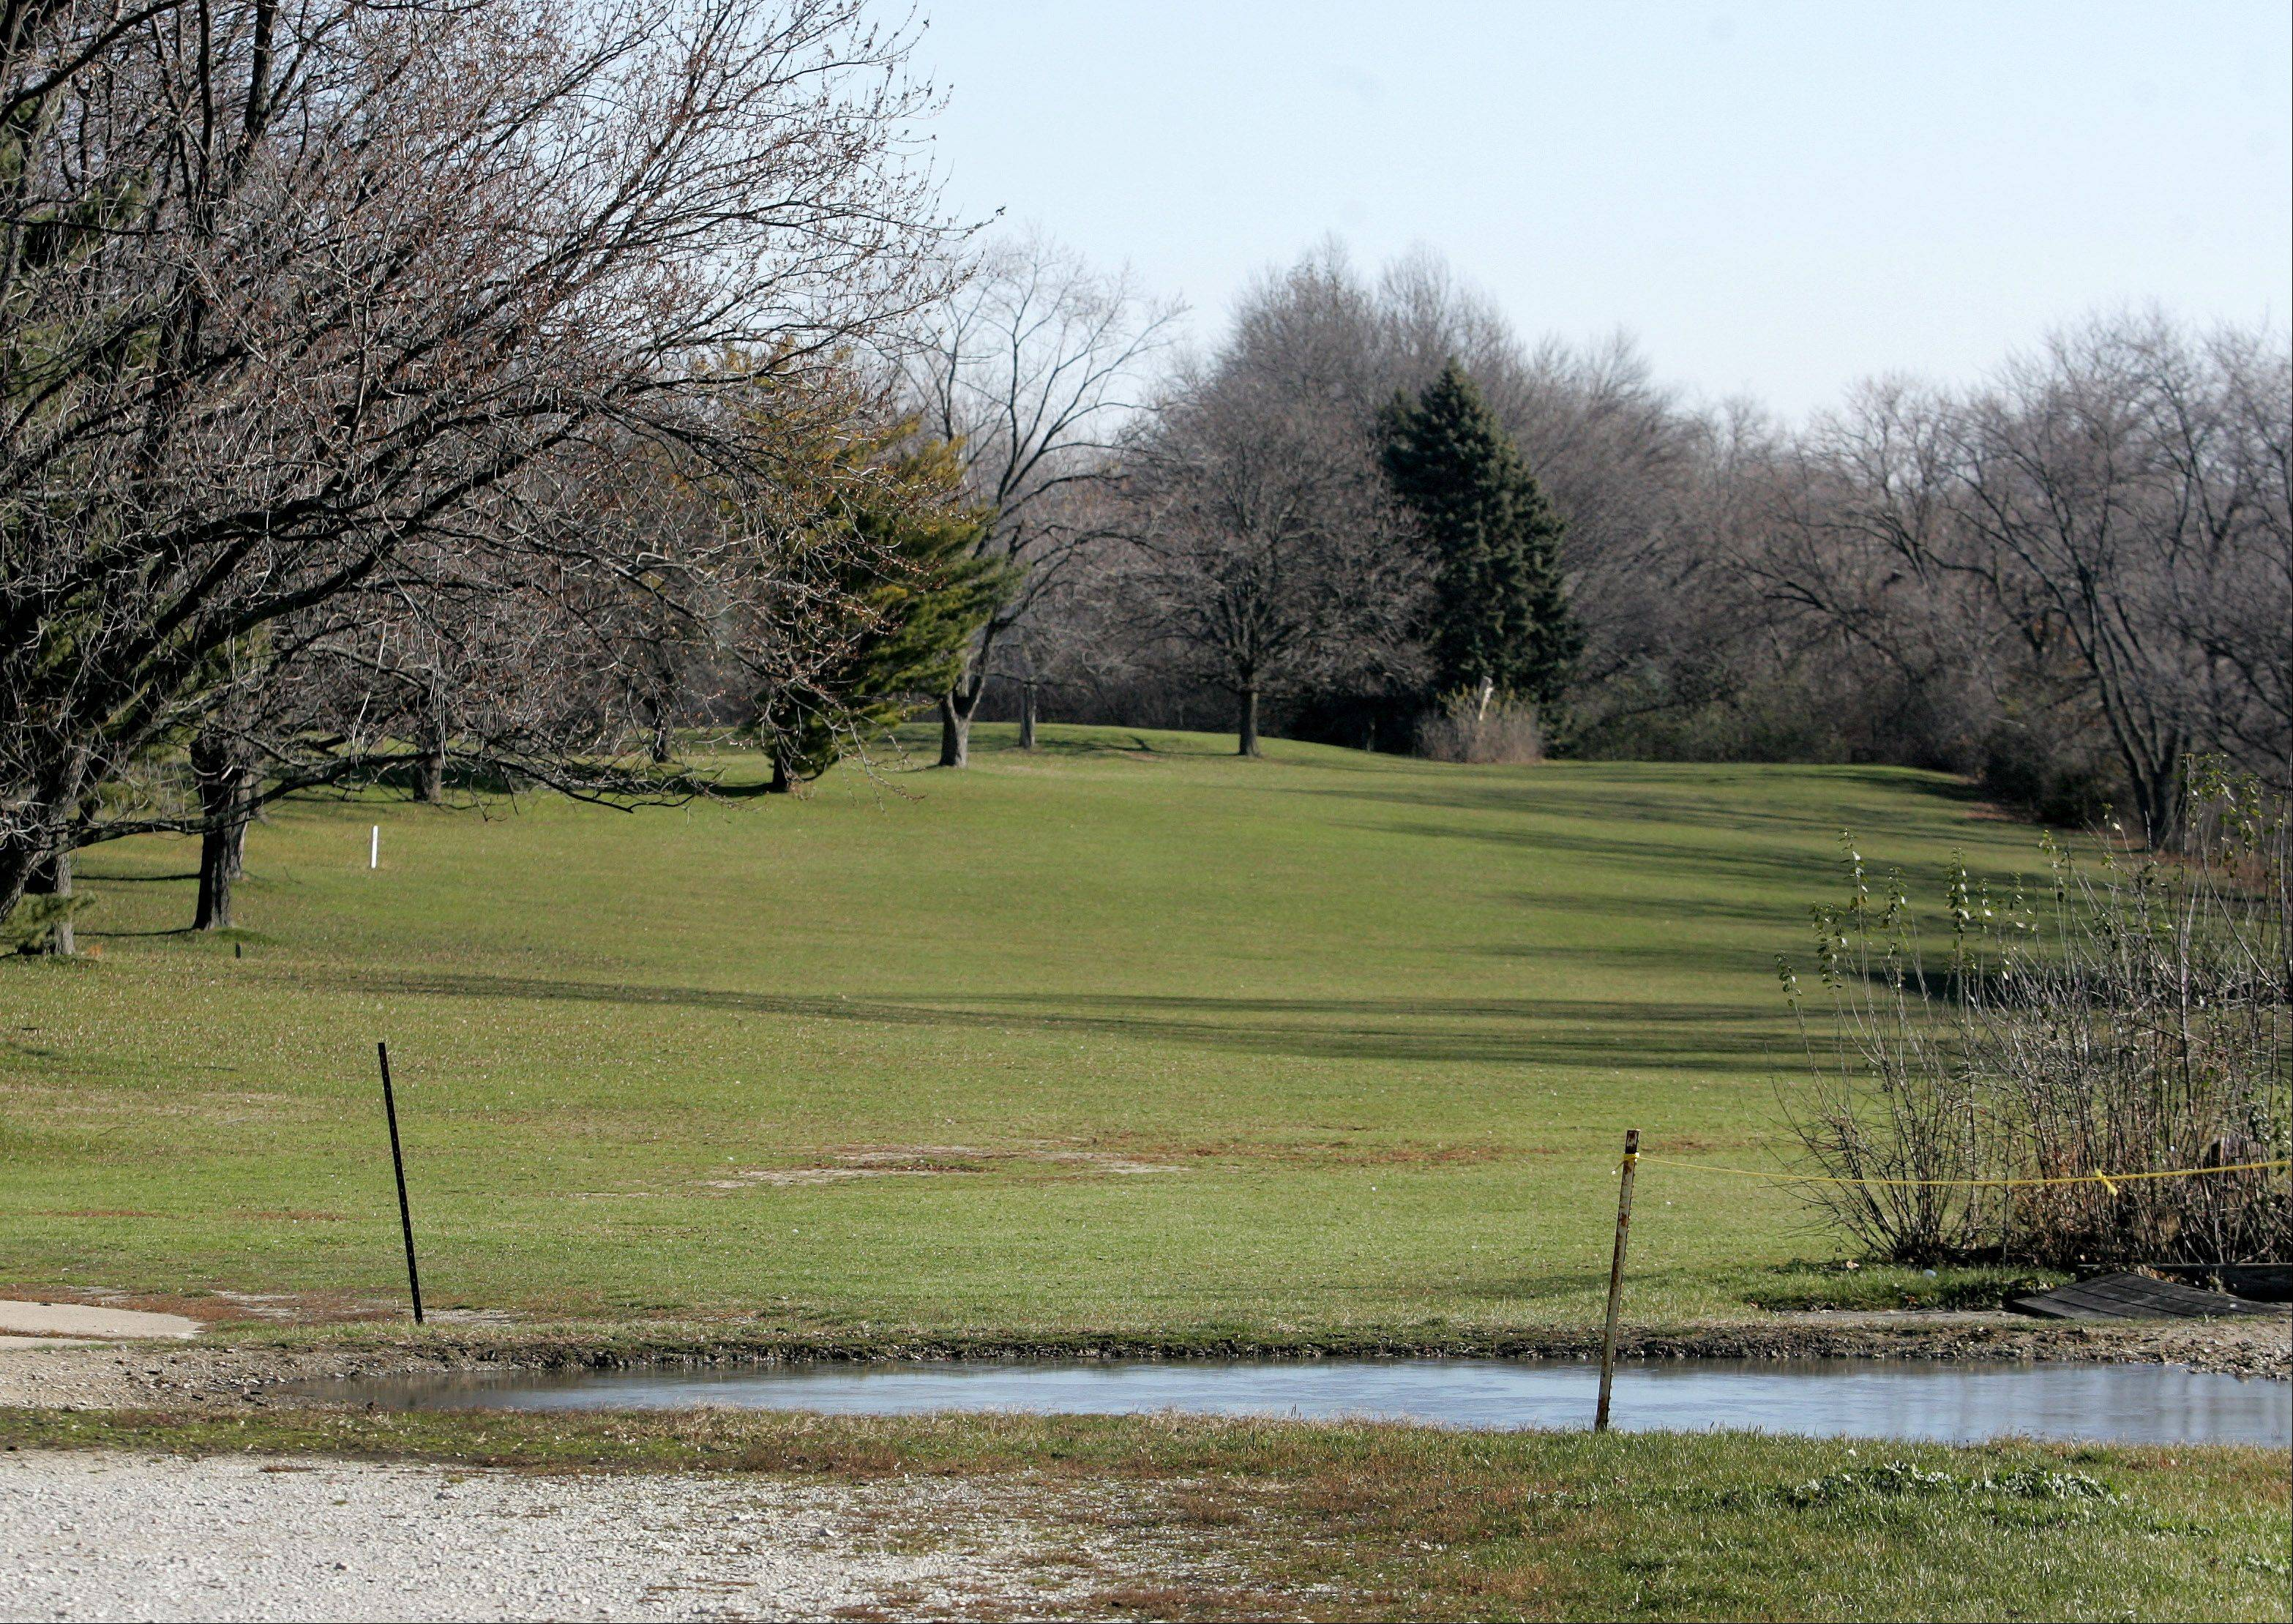 A would-be developer says Lombard doesn�t appear interested in annexing the Ken-Loch Golf Links to allow his company to build apartments and townhouses there.